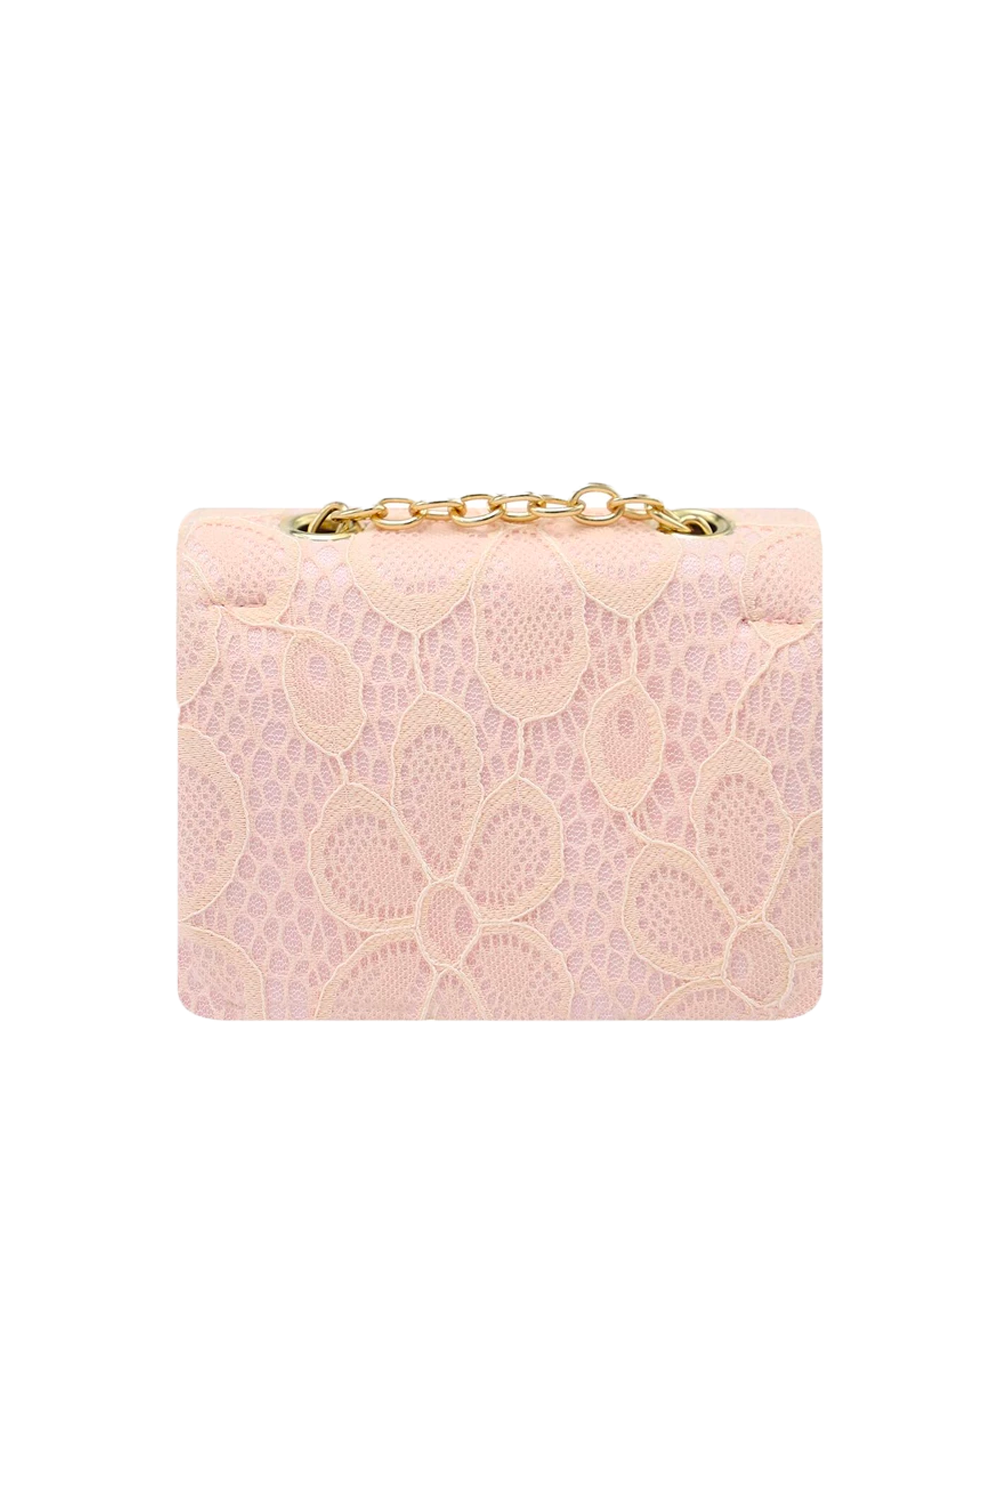 Light Pink Lace Floral Clutch